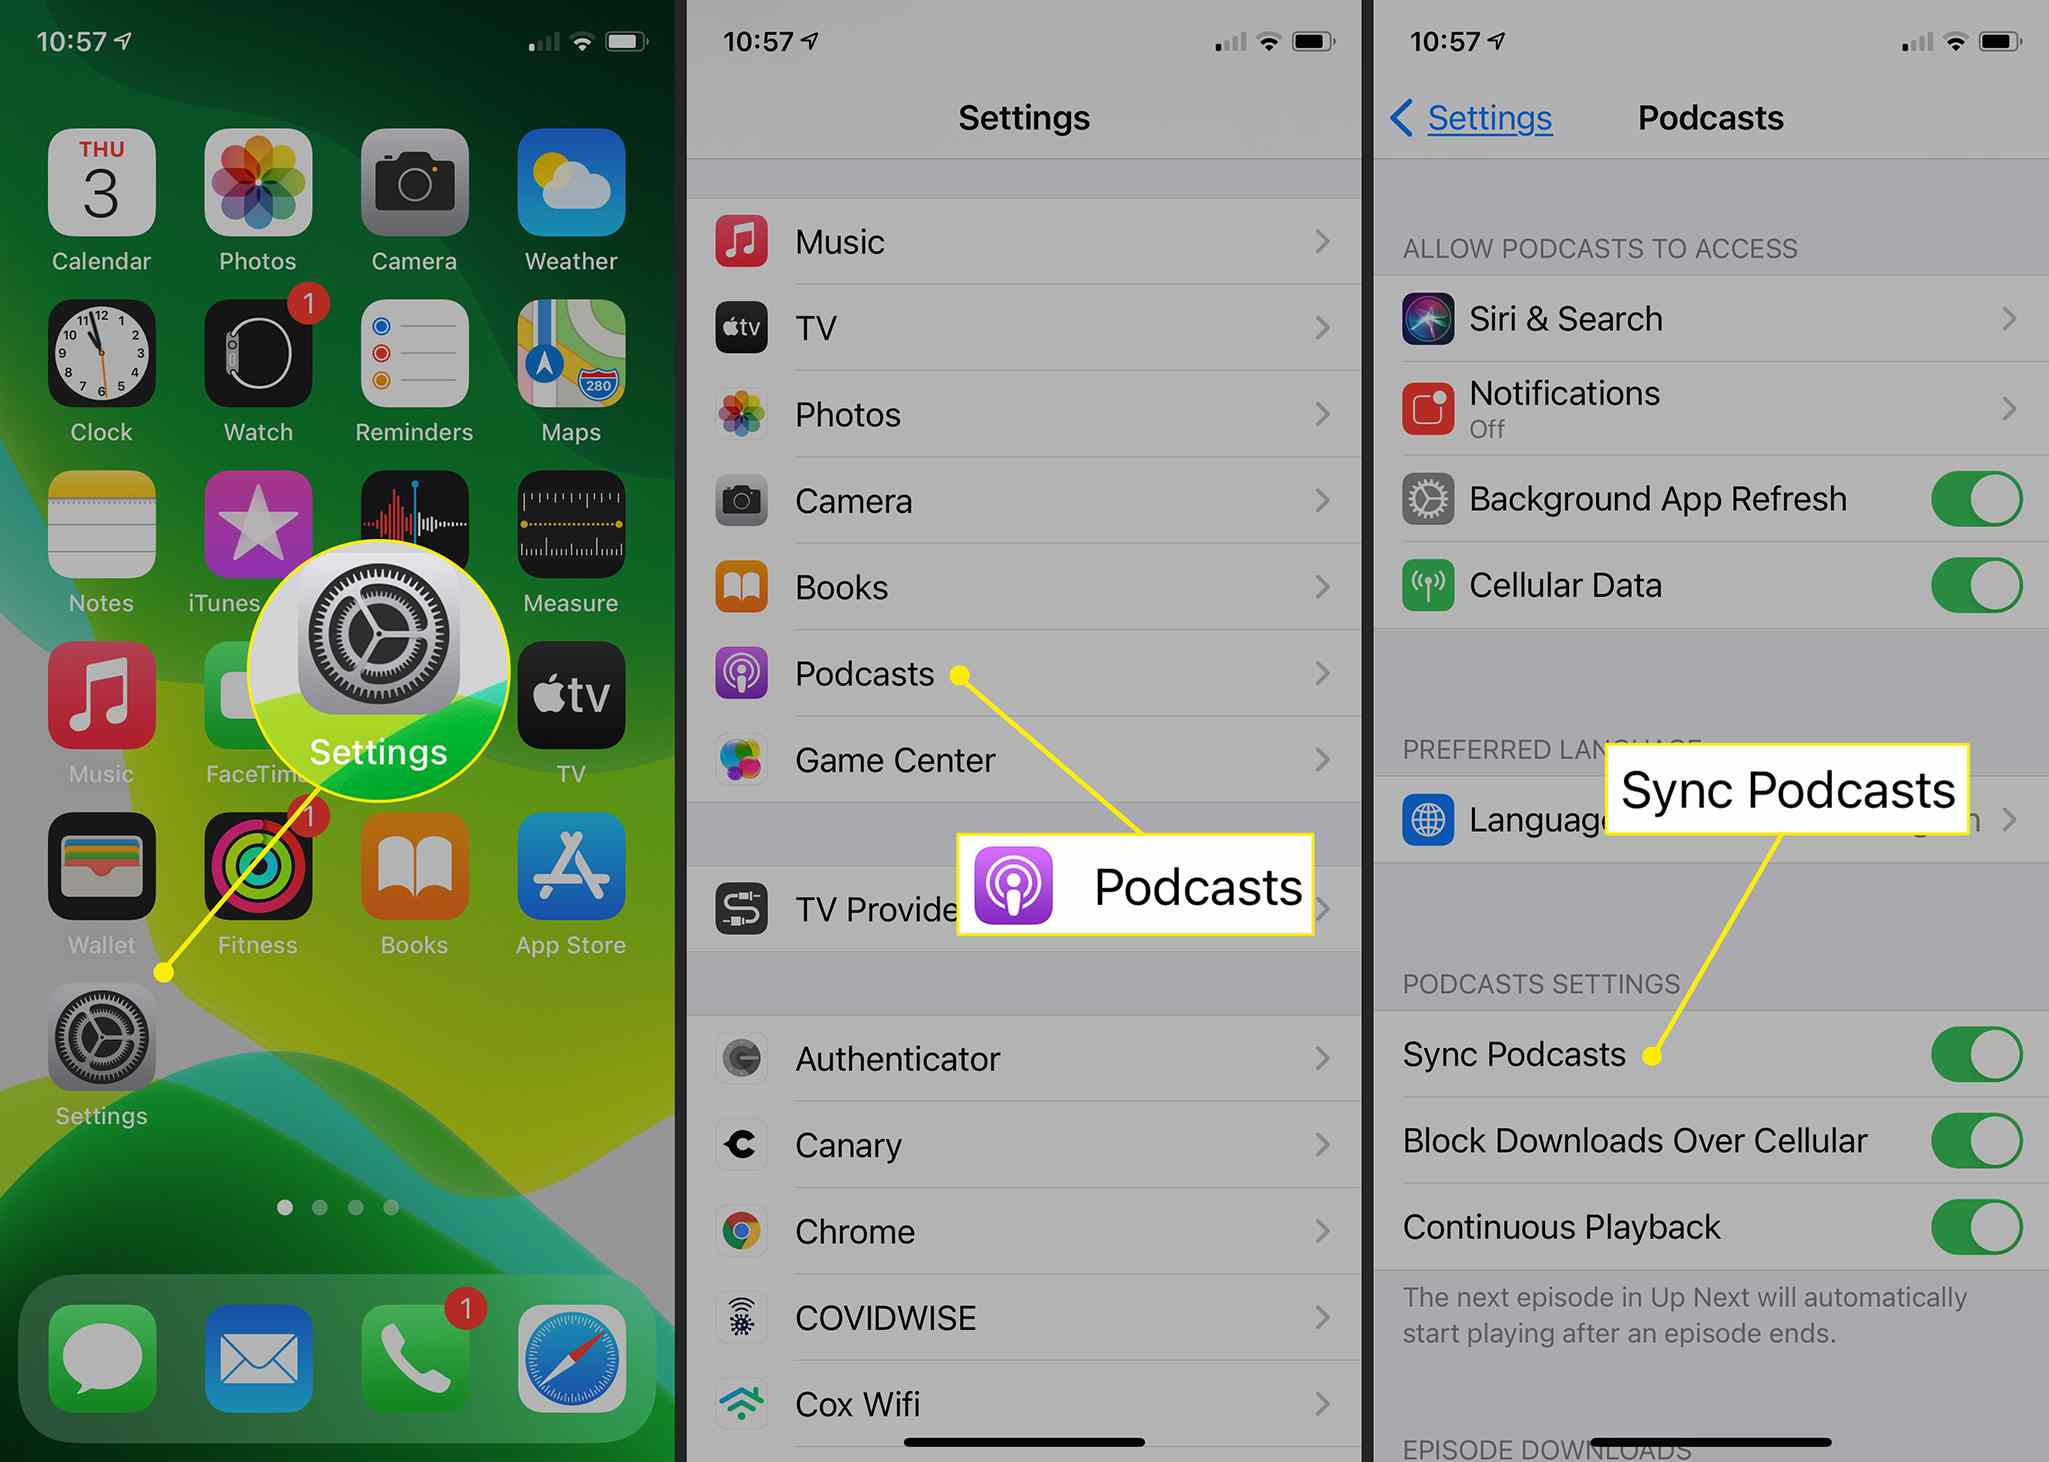 iPhone showing path to Sync Podcasts